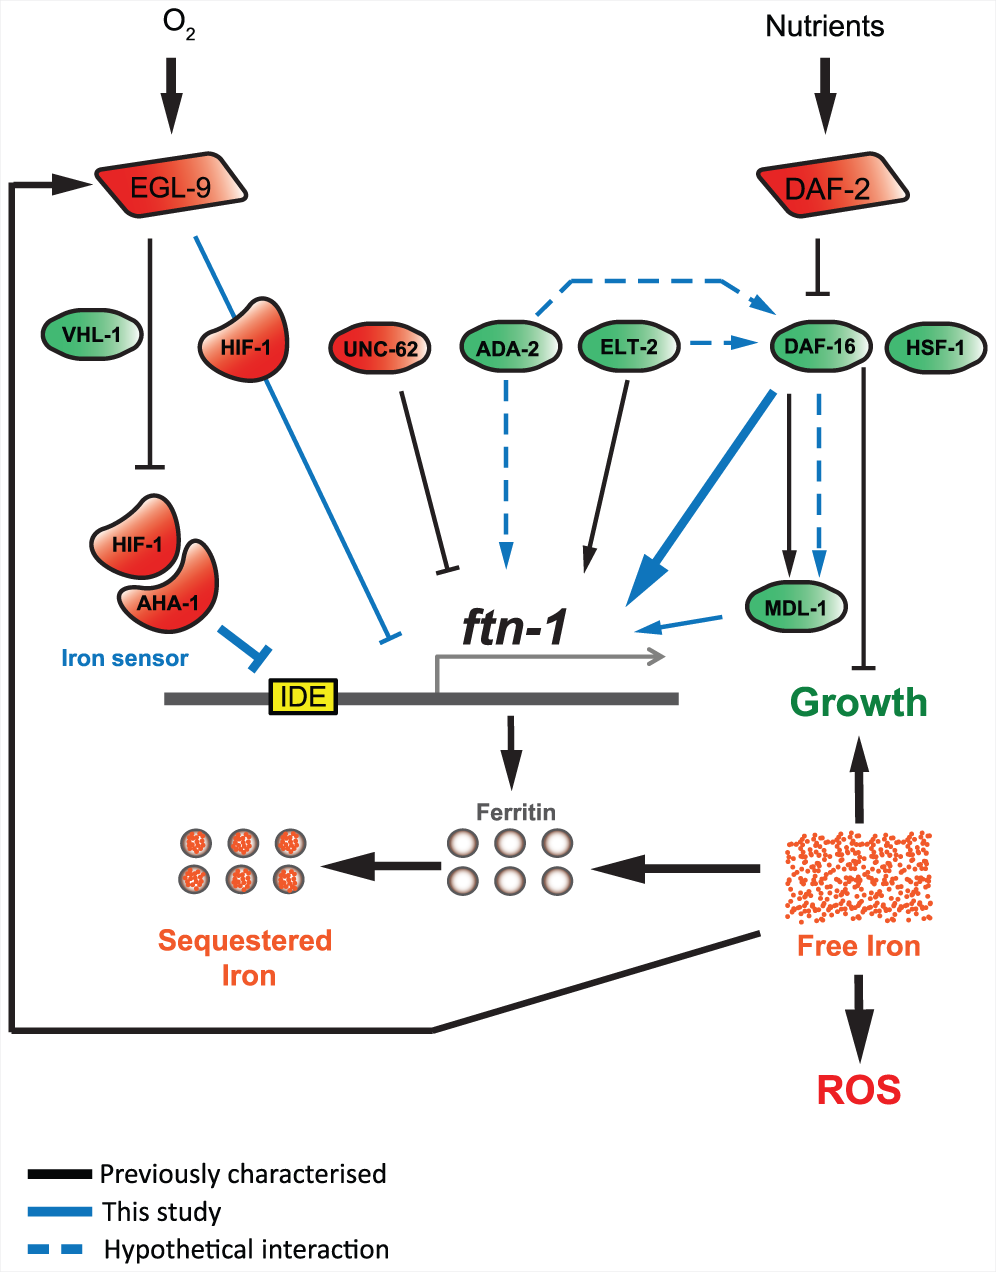 <i>ftn-1</i> expression is regulated by both the insulin/IGF-1 and hypoxia signaling pathways.